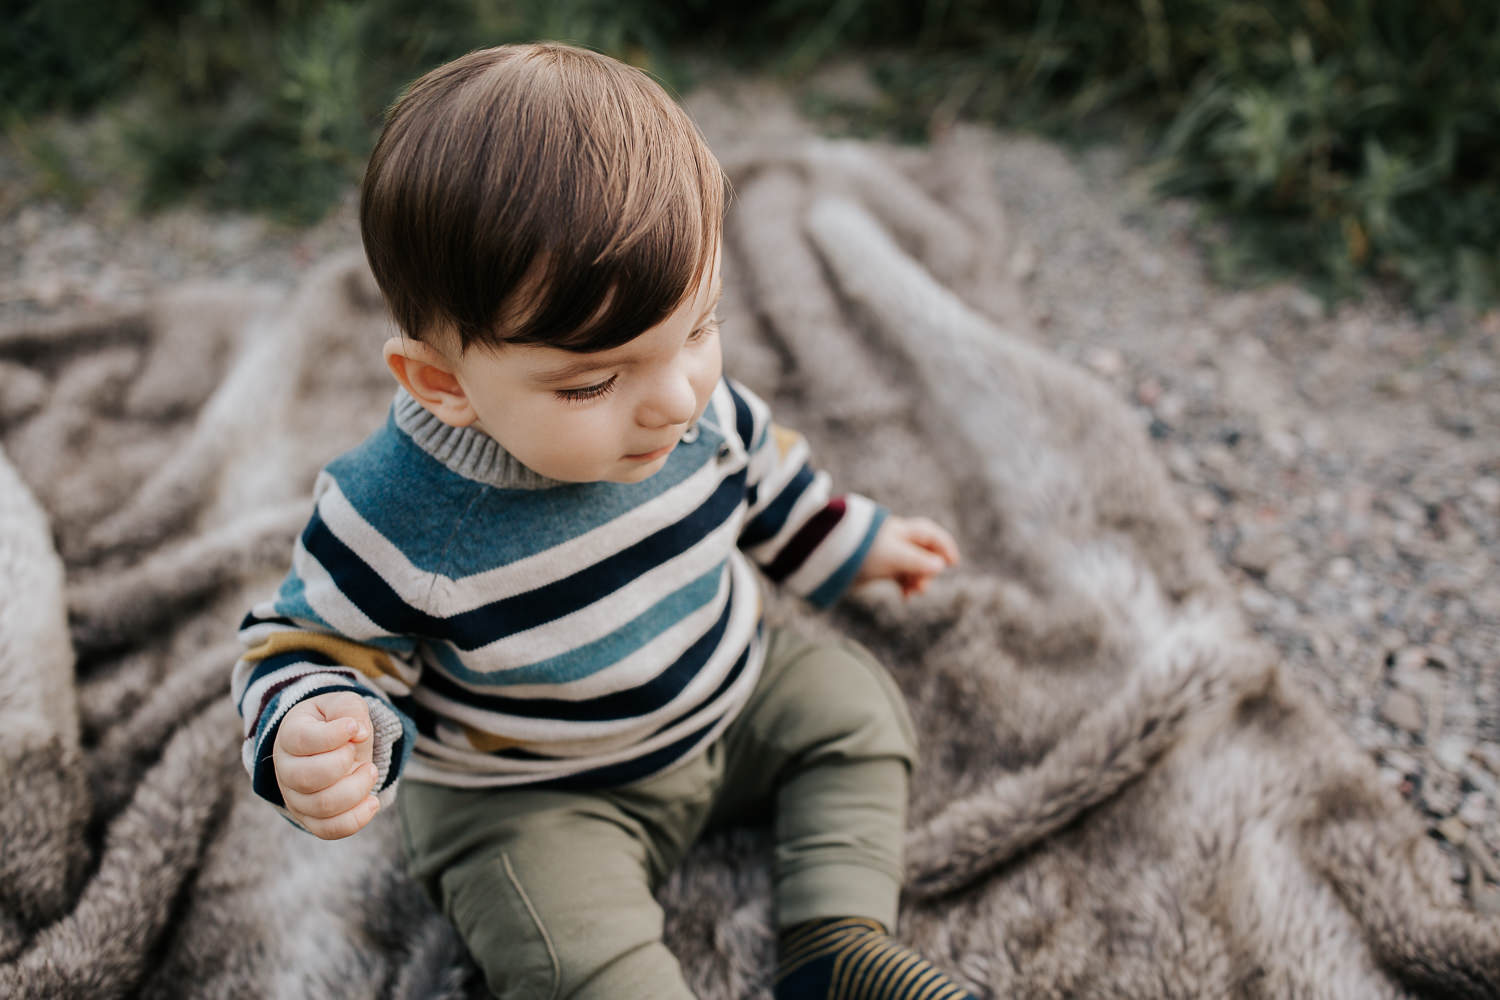 1 year old boy with brown hair and eyes wearing striped sweater sitting on blanket in outdoor path down - Markham Golden Hour Photos